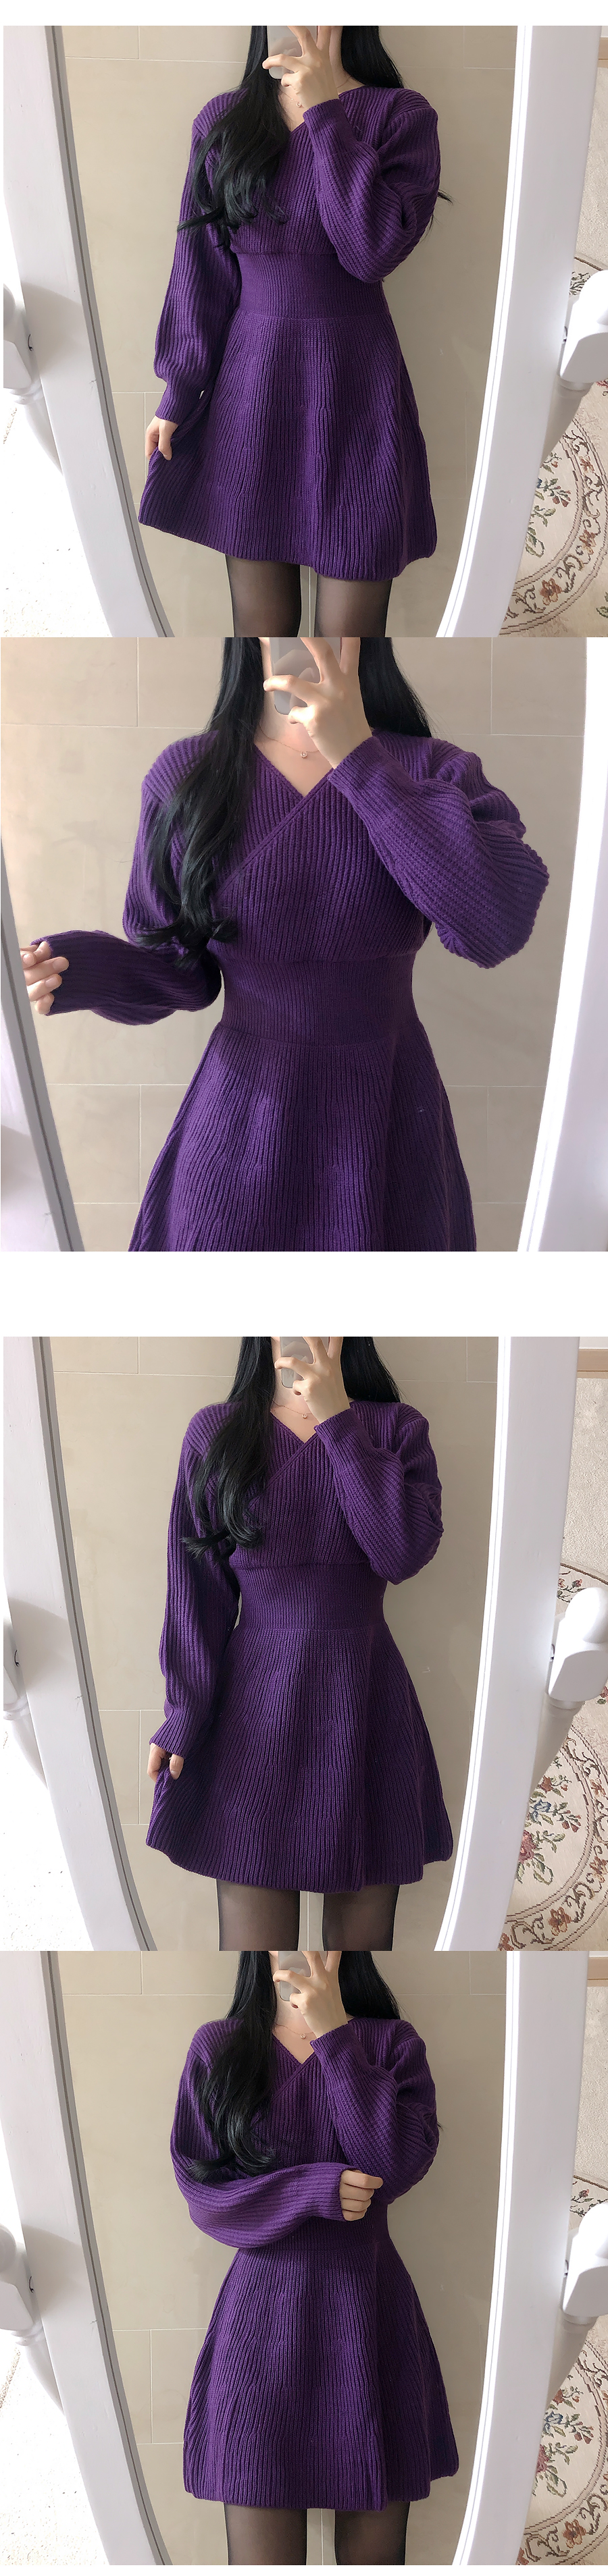 Her wrap knit dress